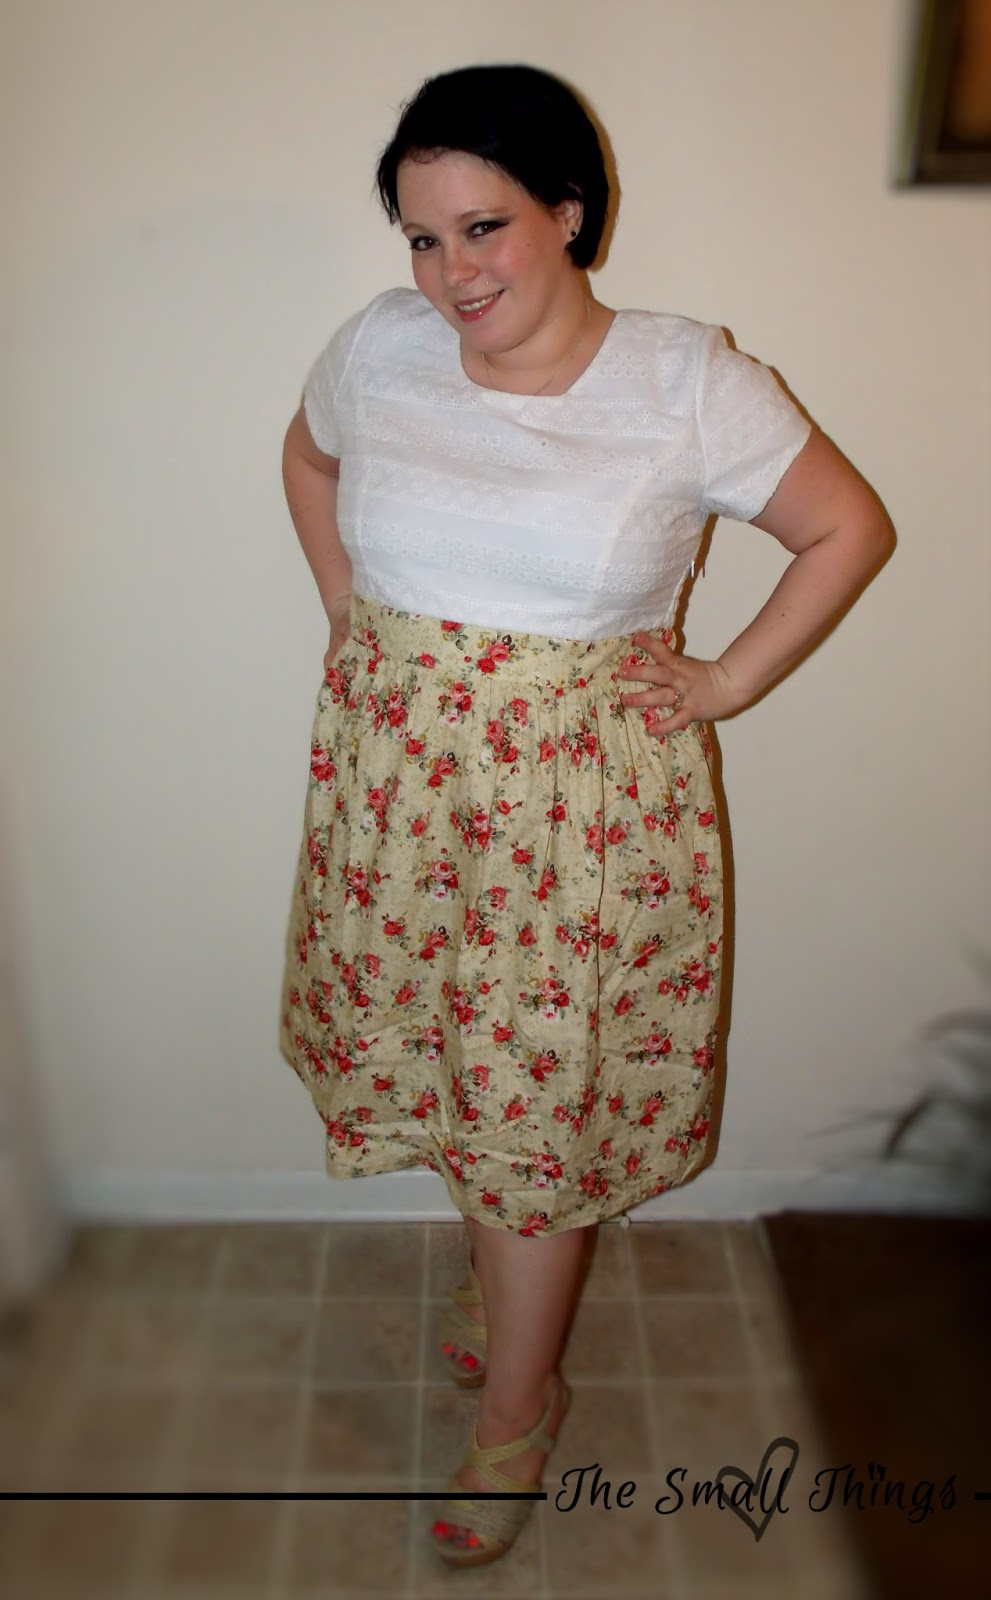 Mikarose modest clothing review and giveaway the small things